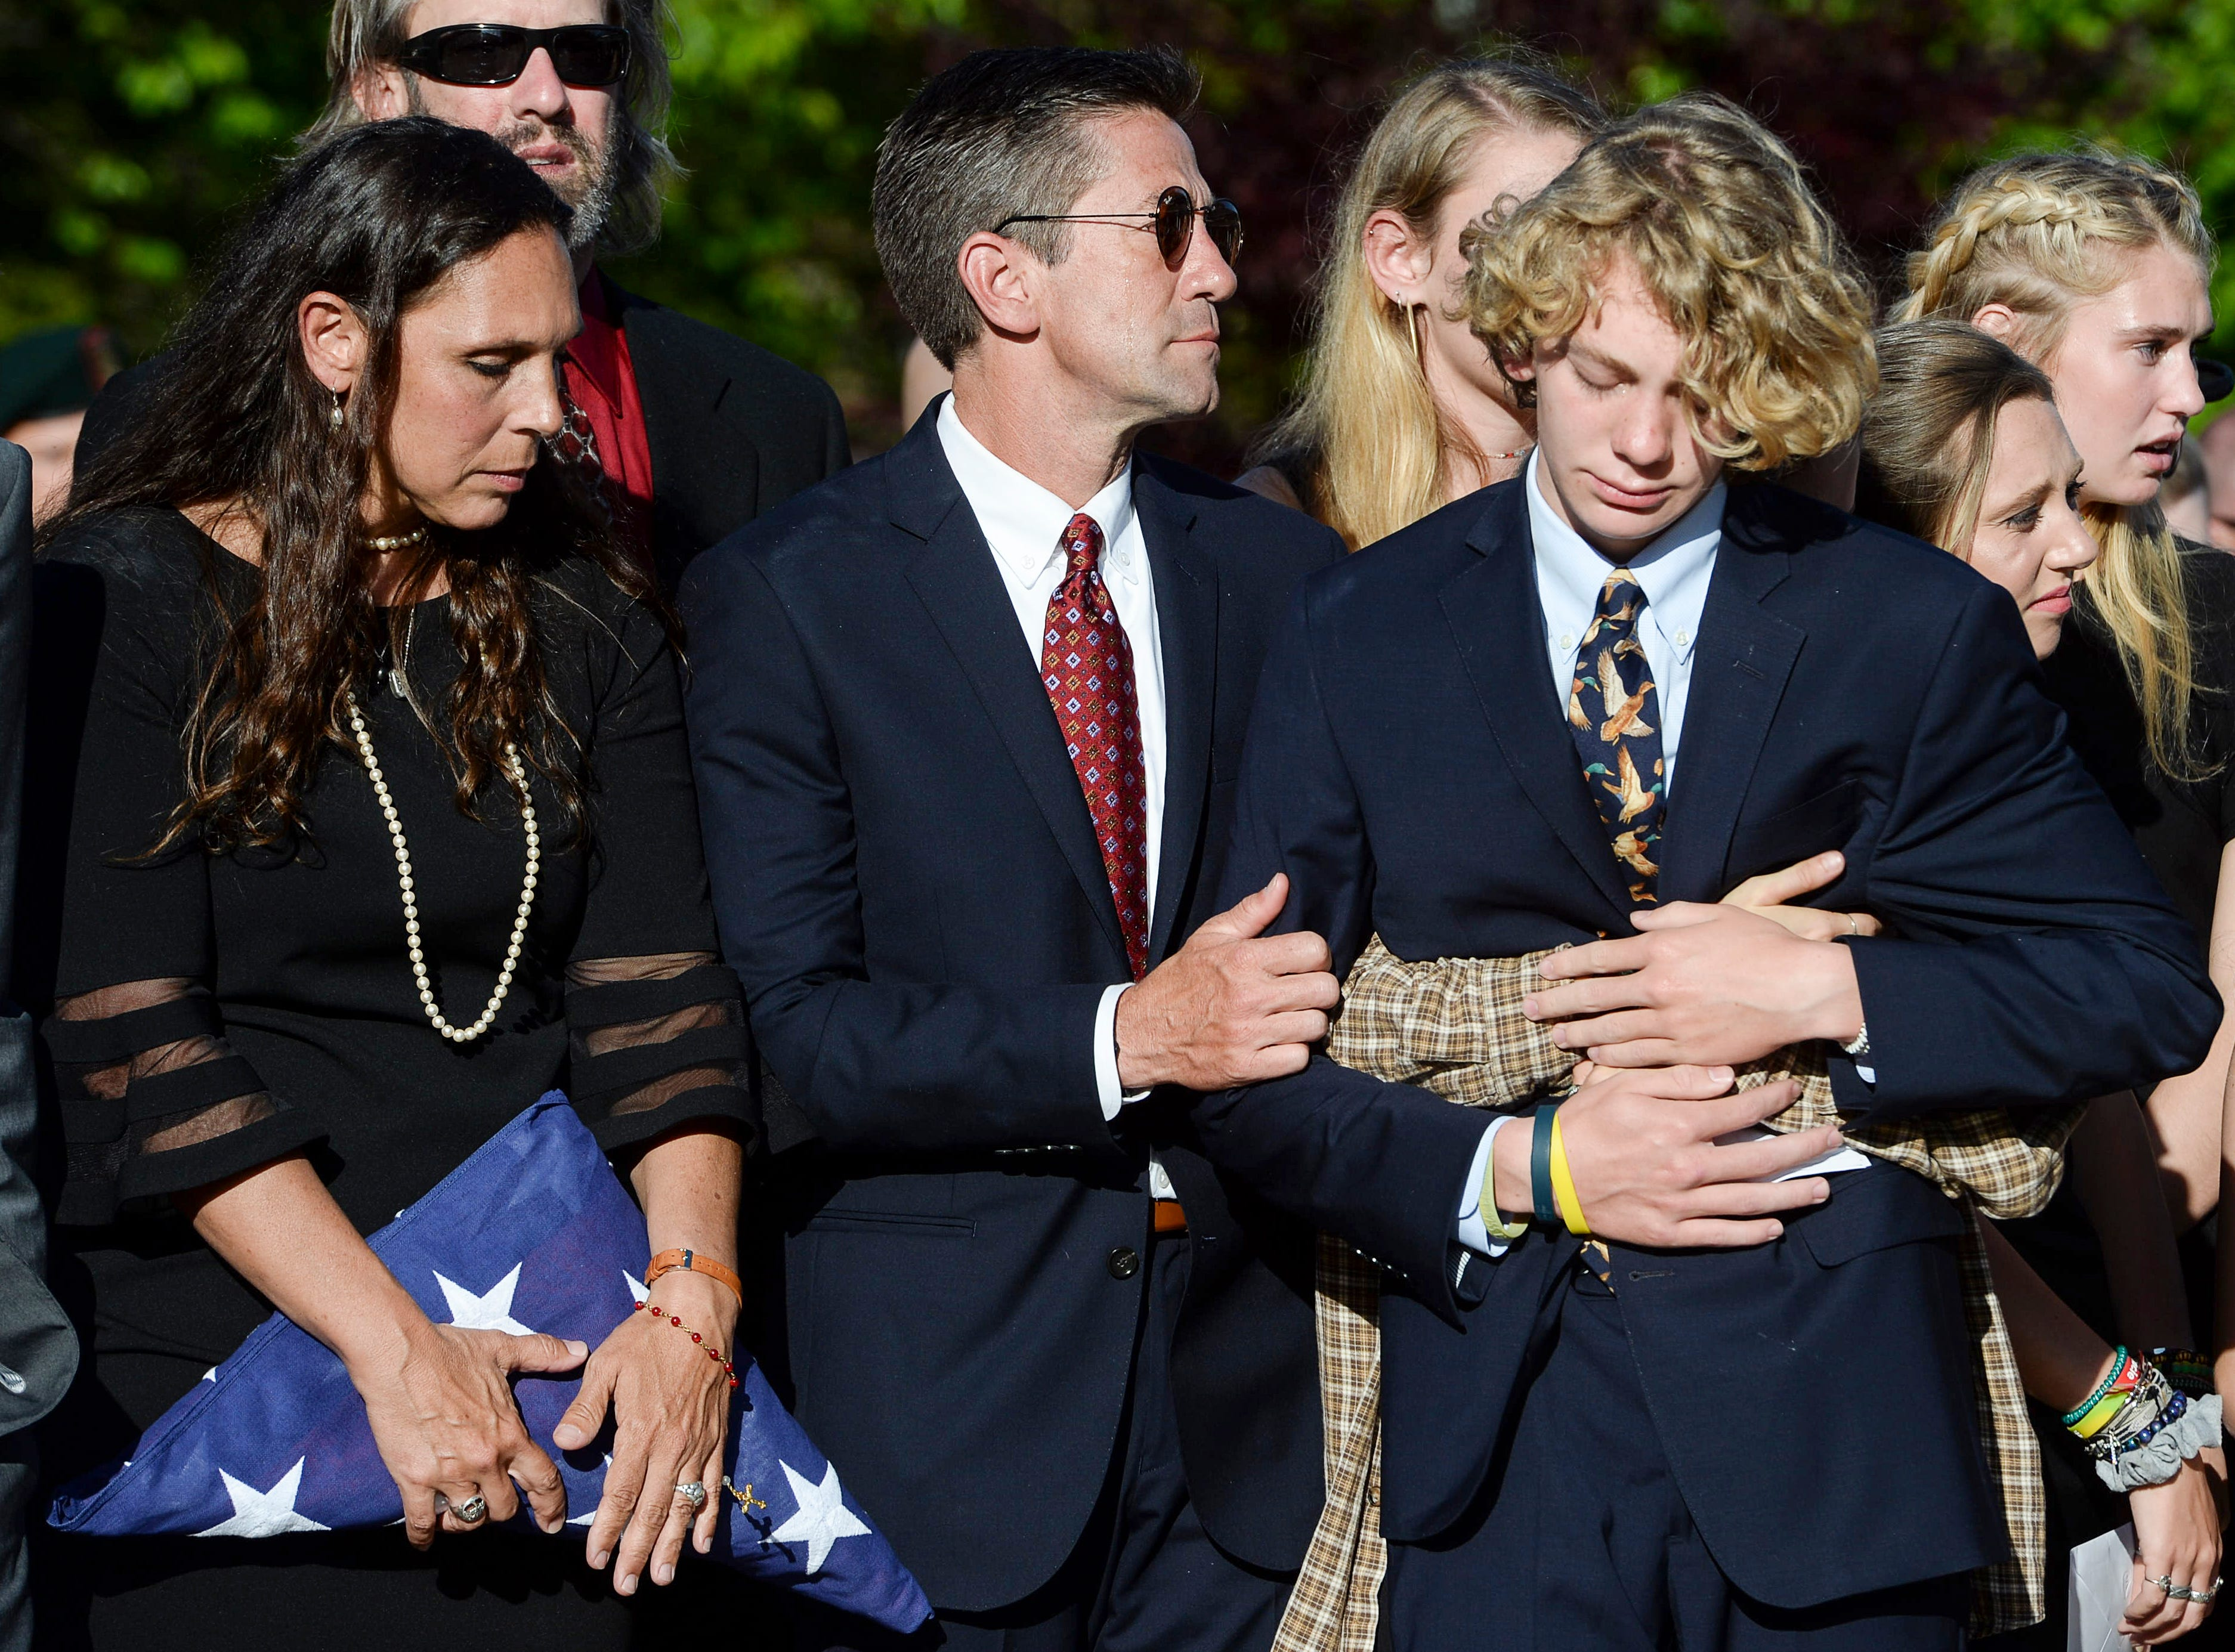 Riley Howell's mother, Natalie Henry-Howell, and father, Thomas Howell, Jr., stand together as their son, Teddy, is hugged by Riley's girlfriend, Lauren Westmoreland, after acting as pallbearer following a memorial service for Riley in Lake Junaluska, North Carolina, May 5, 2019.